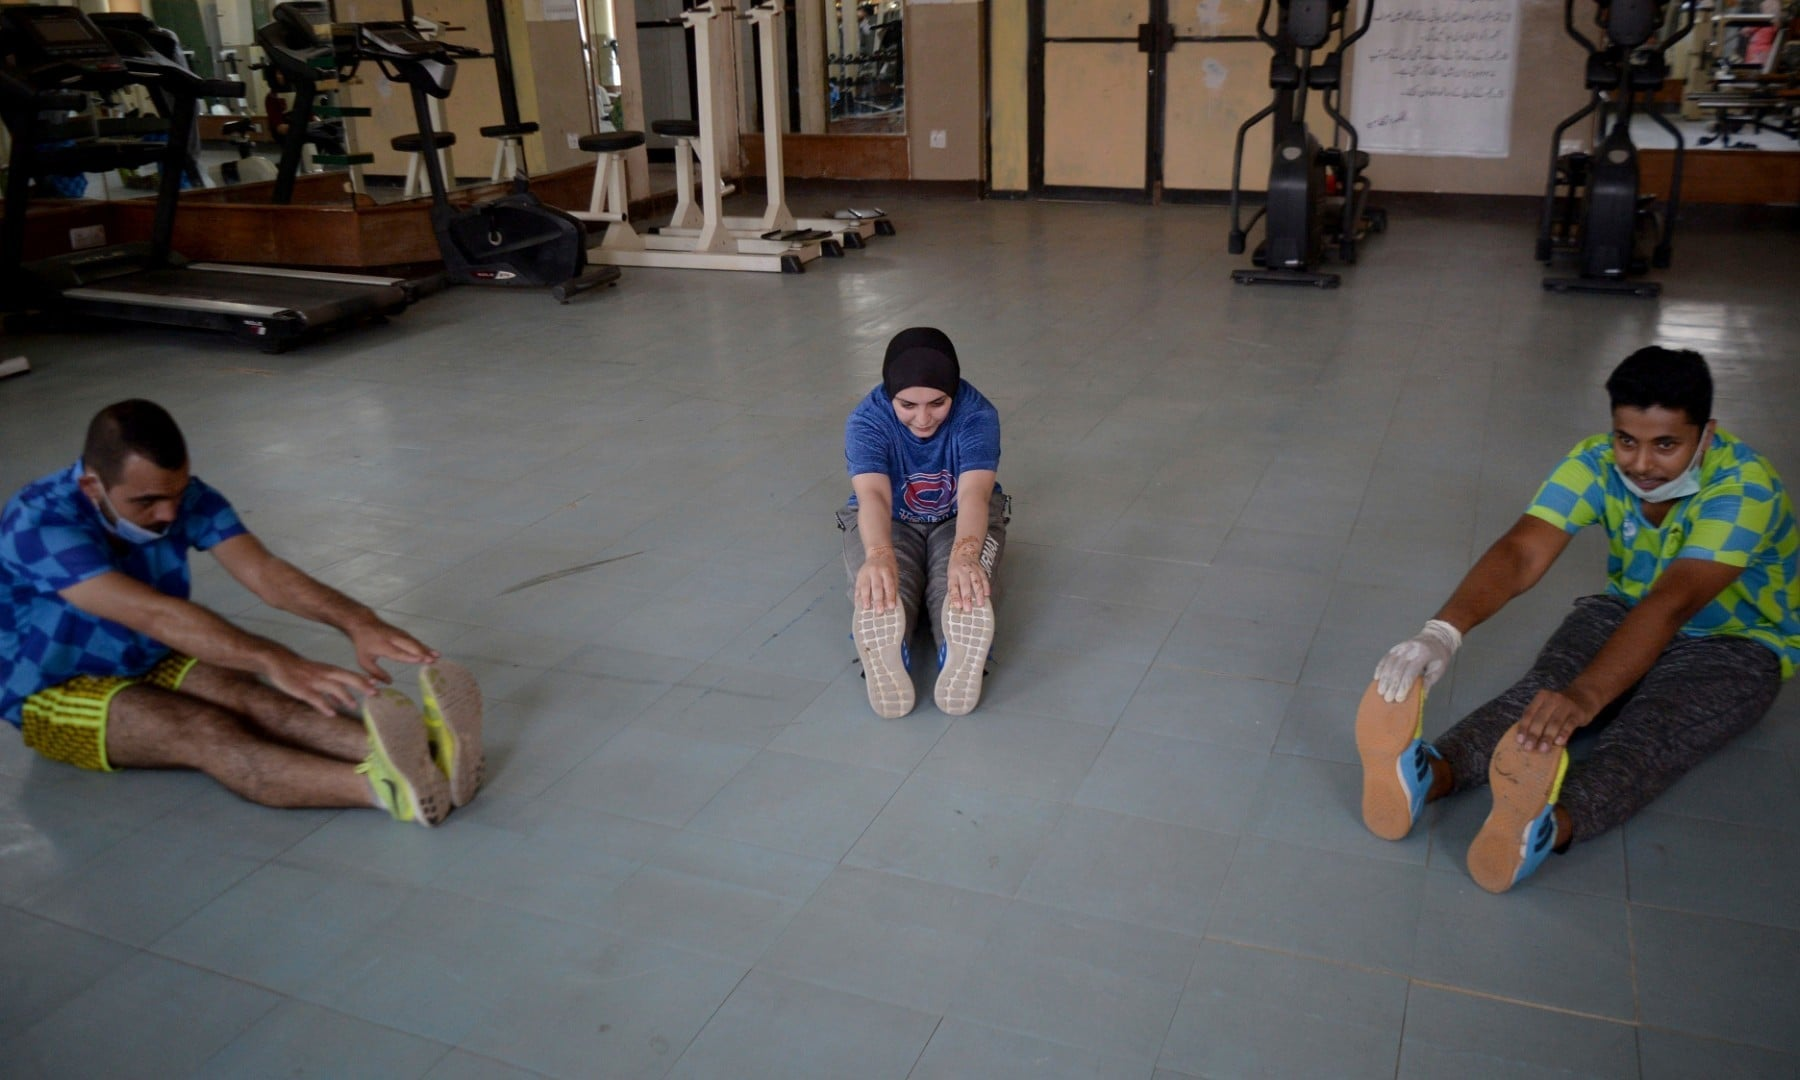 Athletes exercise at a gym following an ease in restrictions that had been imposed to help control the coronavirus in Peshawar on August 10. — AP